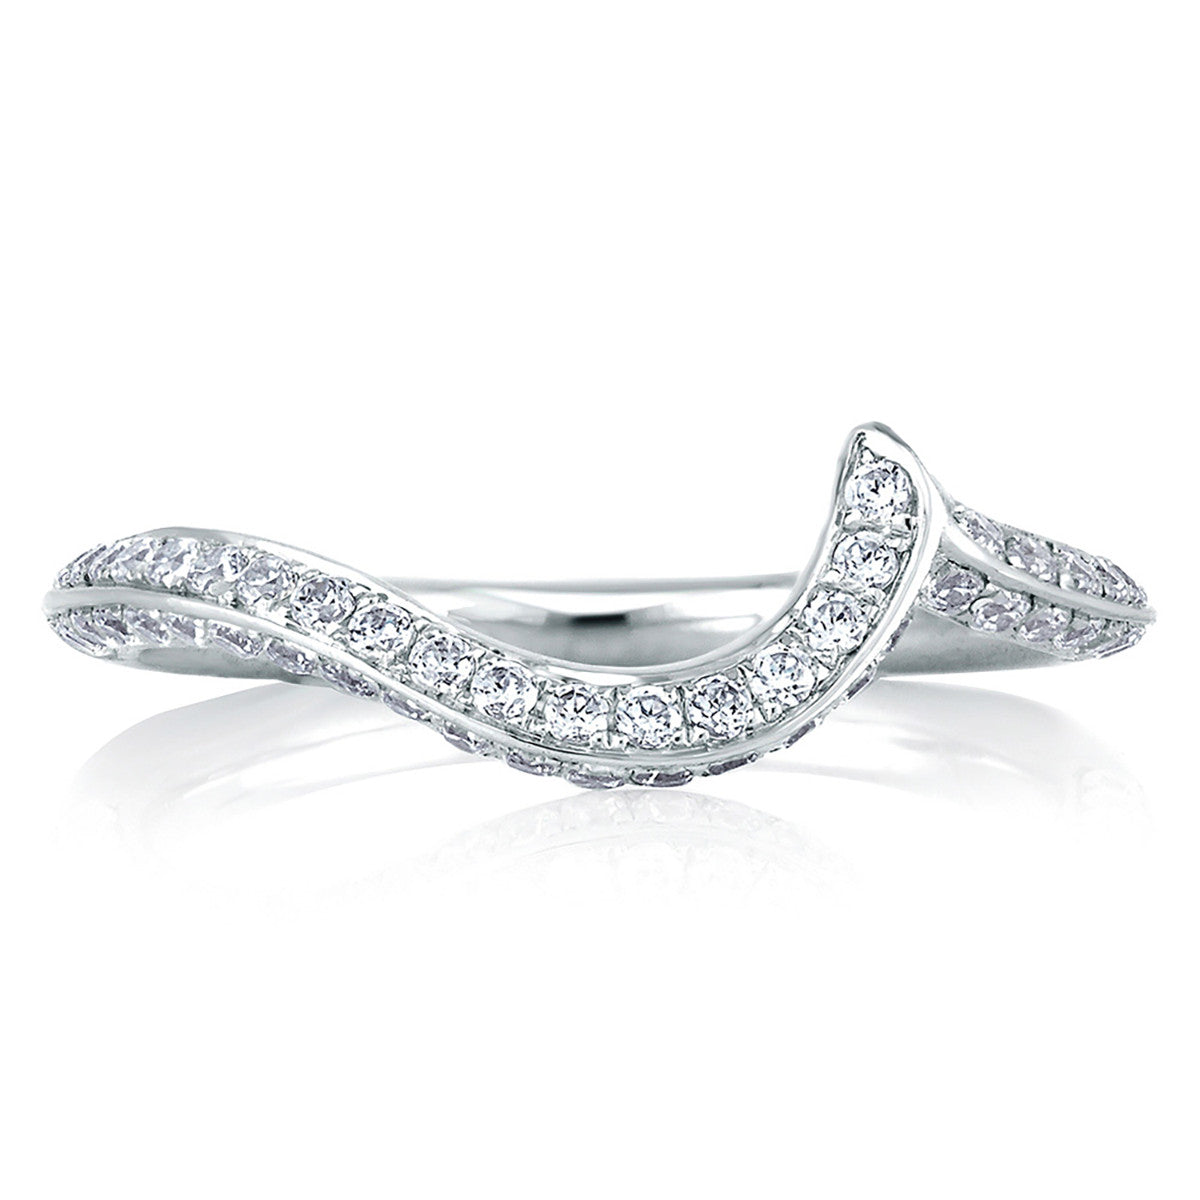 A. Jaffe Signature Diamond Swirl MRS322/37